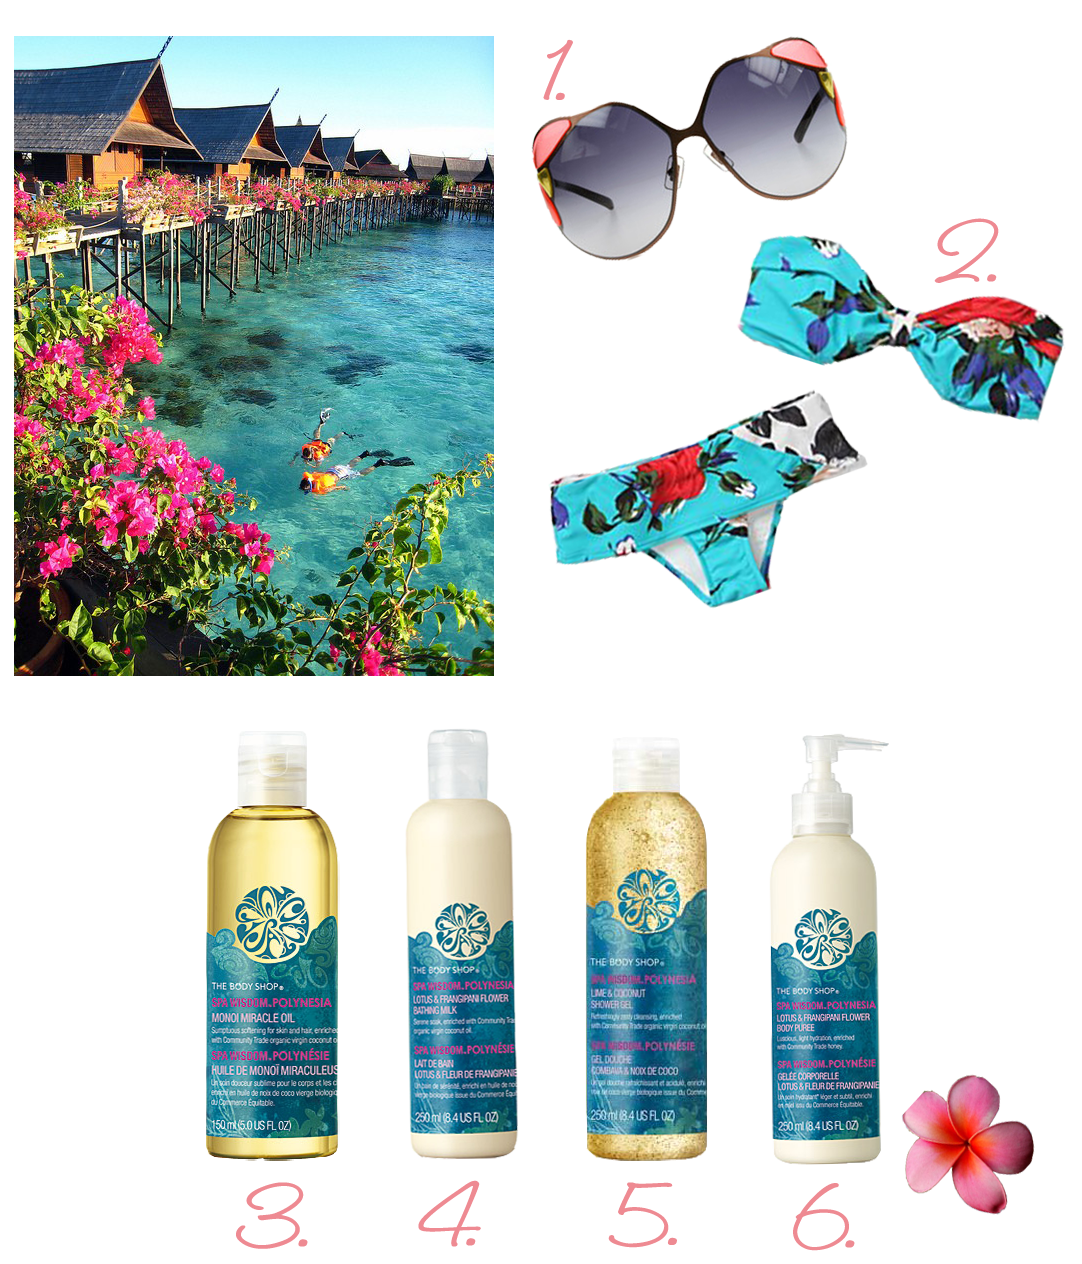 Oil clipart product spa. Tropical oasis chronicles of